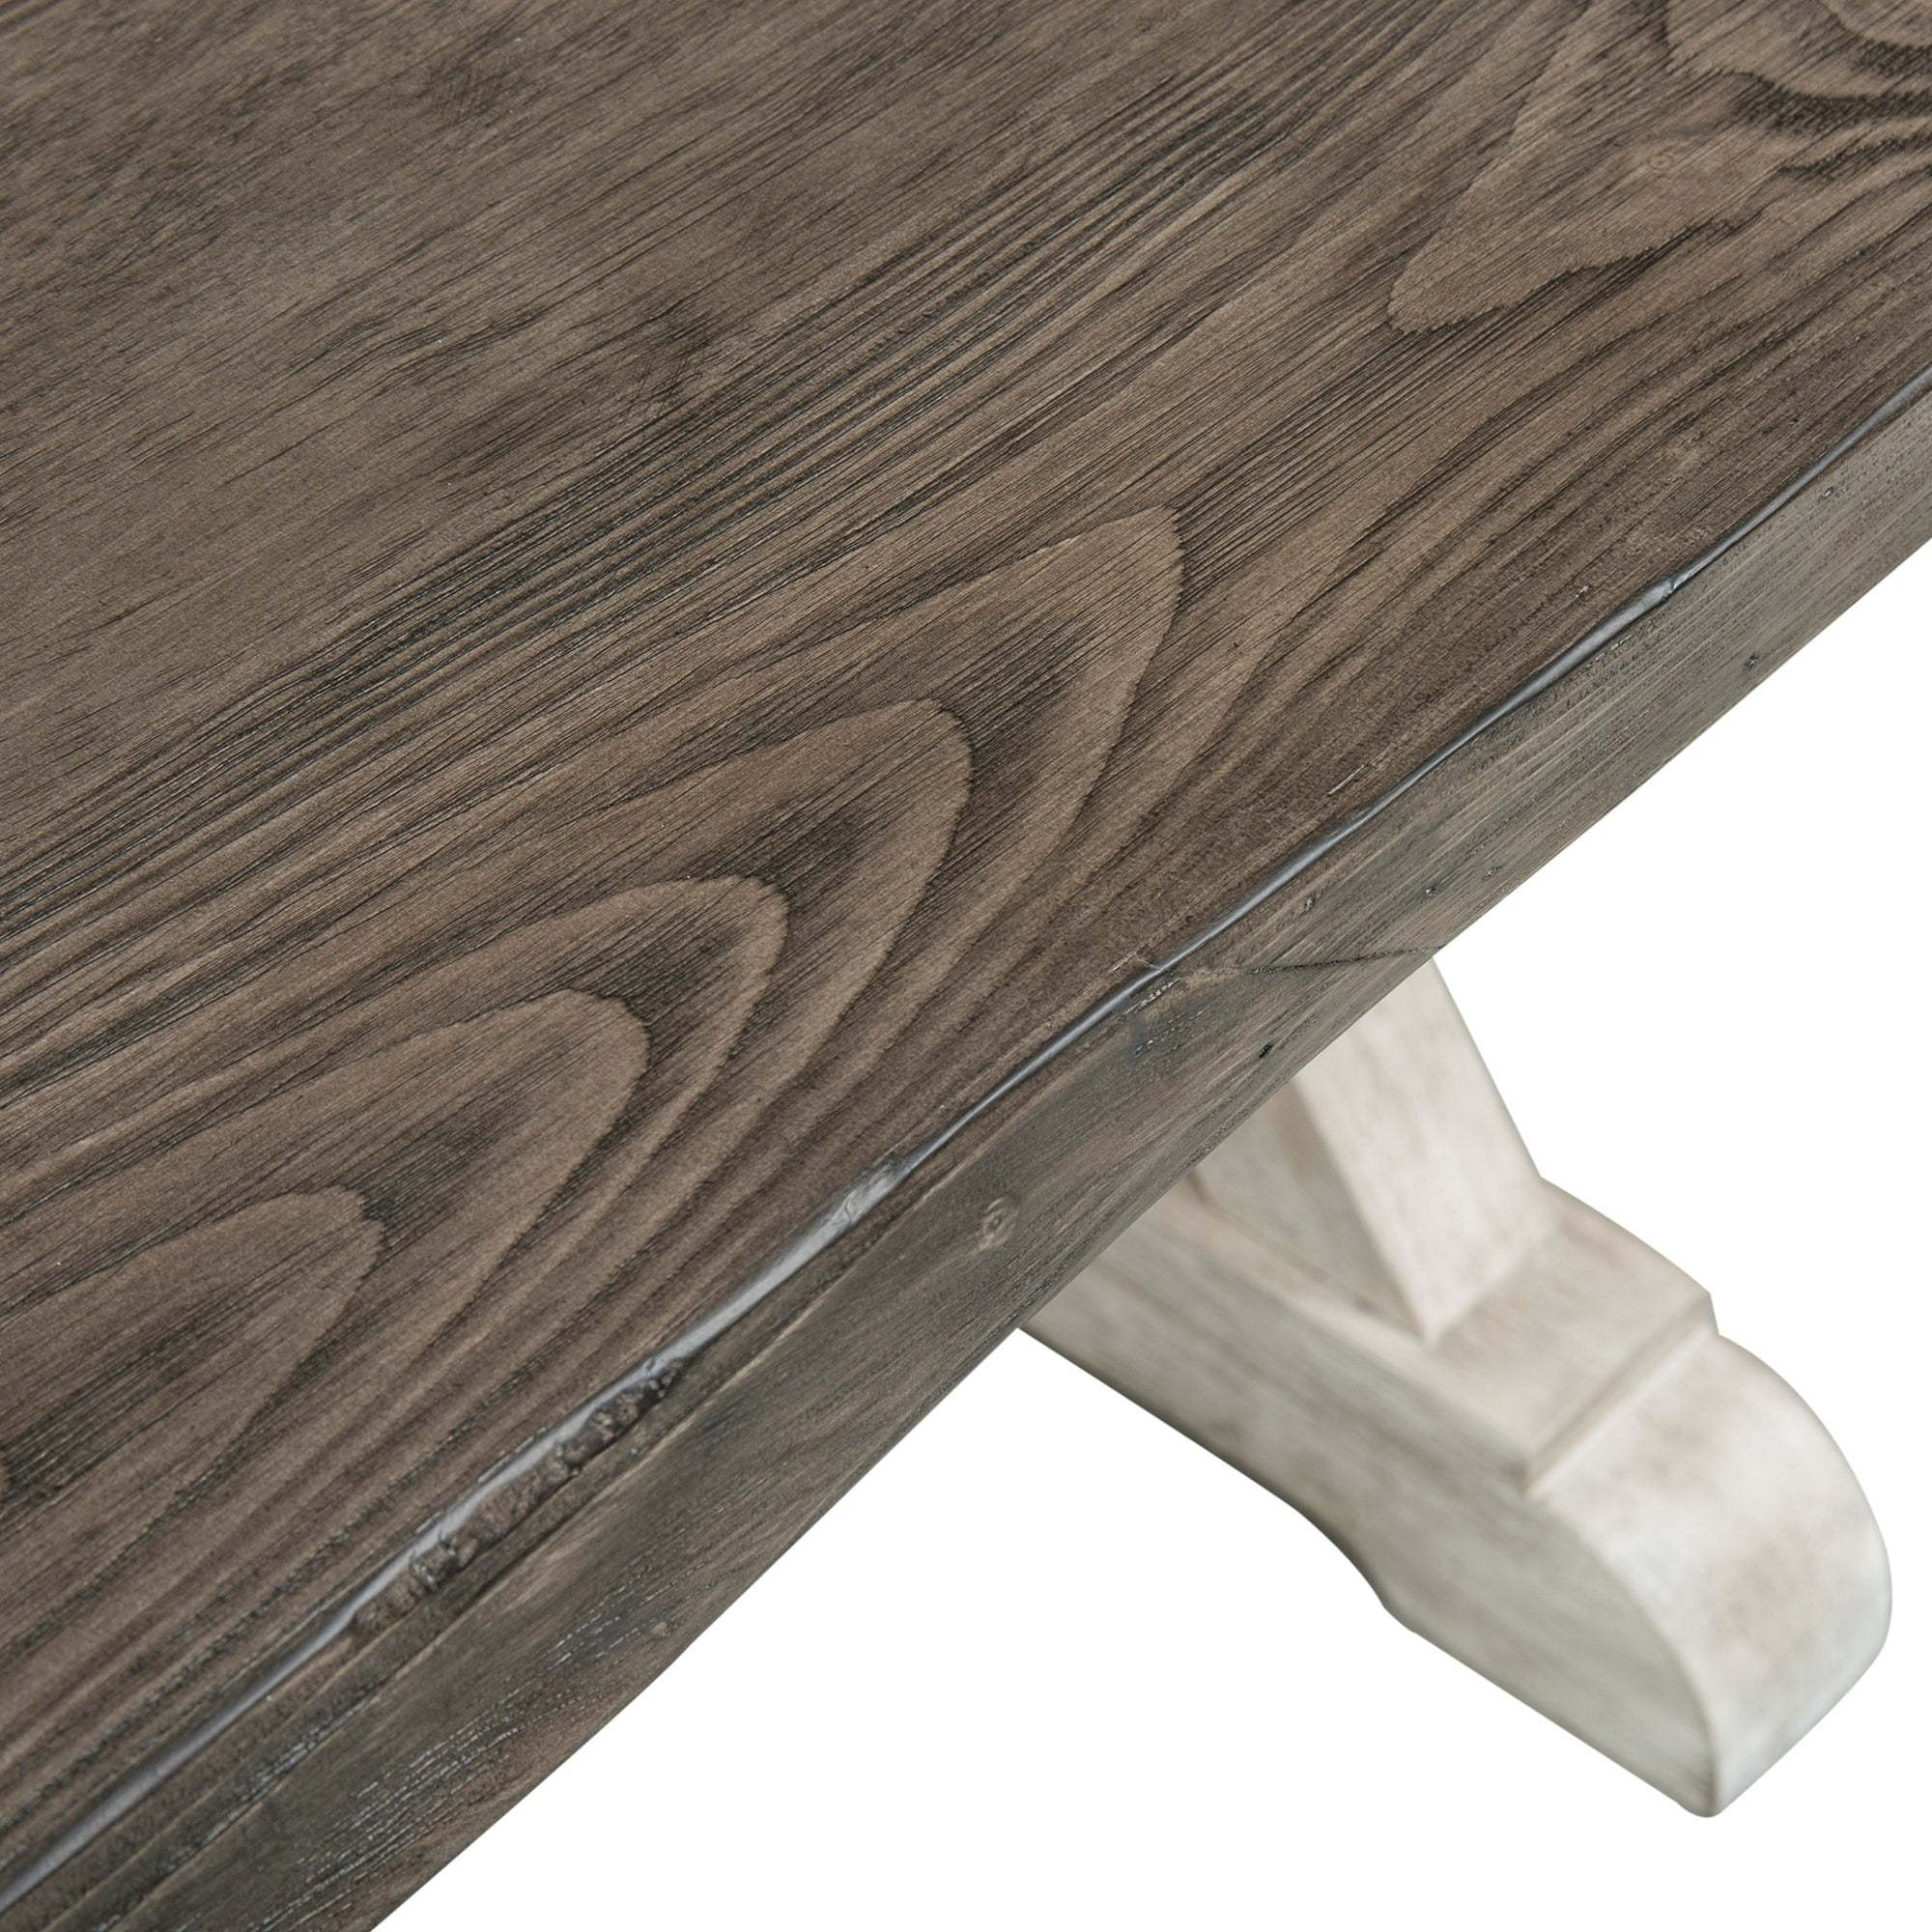 Willowrun Rustic White and Weathered Gray Trestle Table Grey